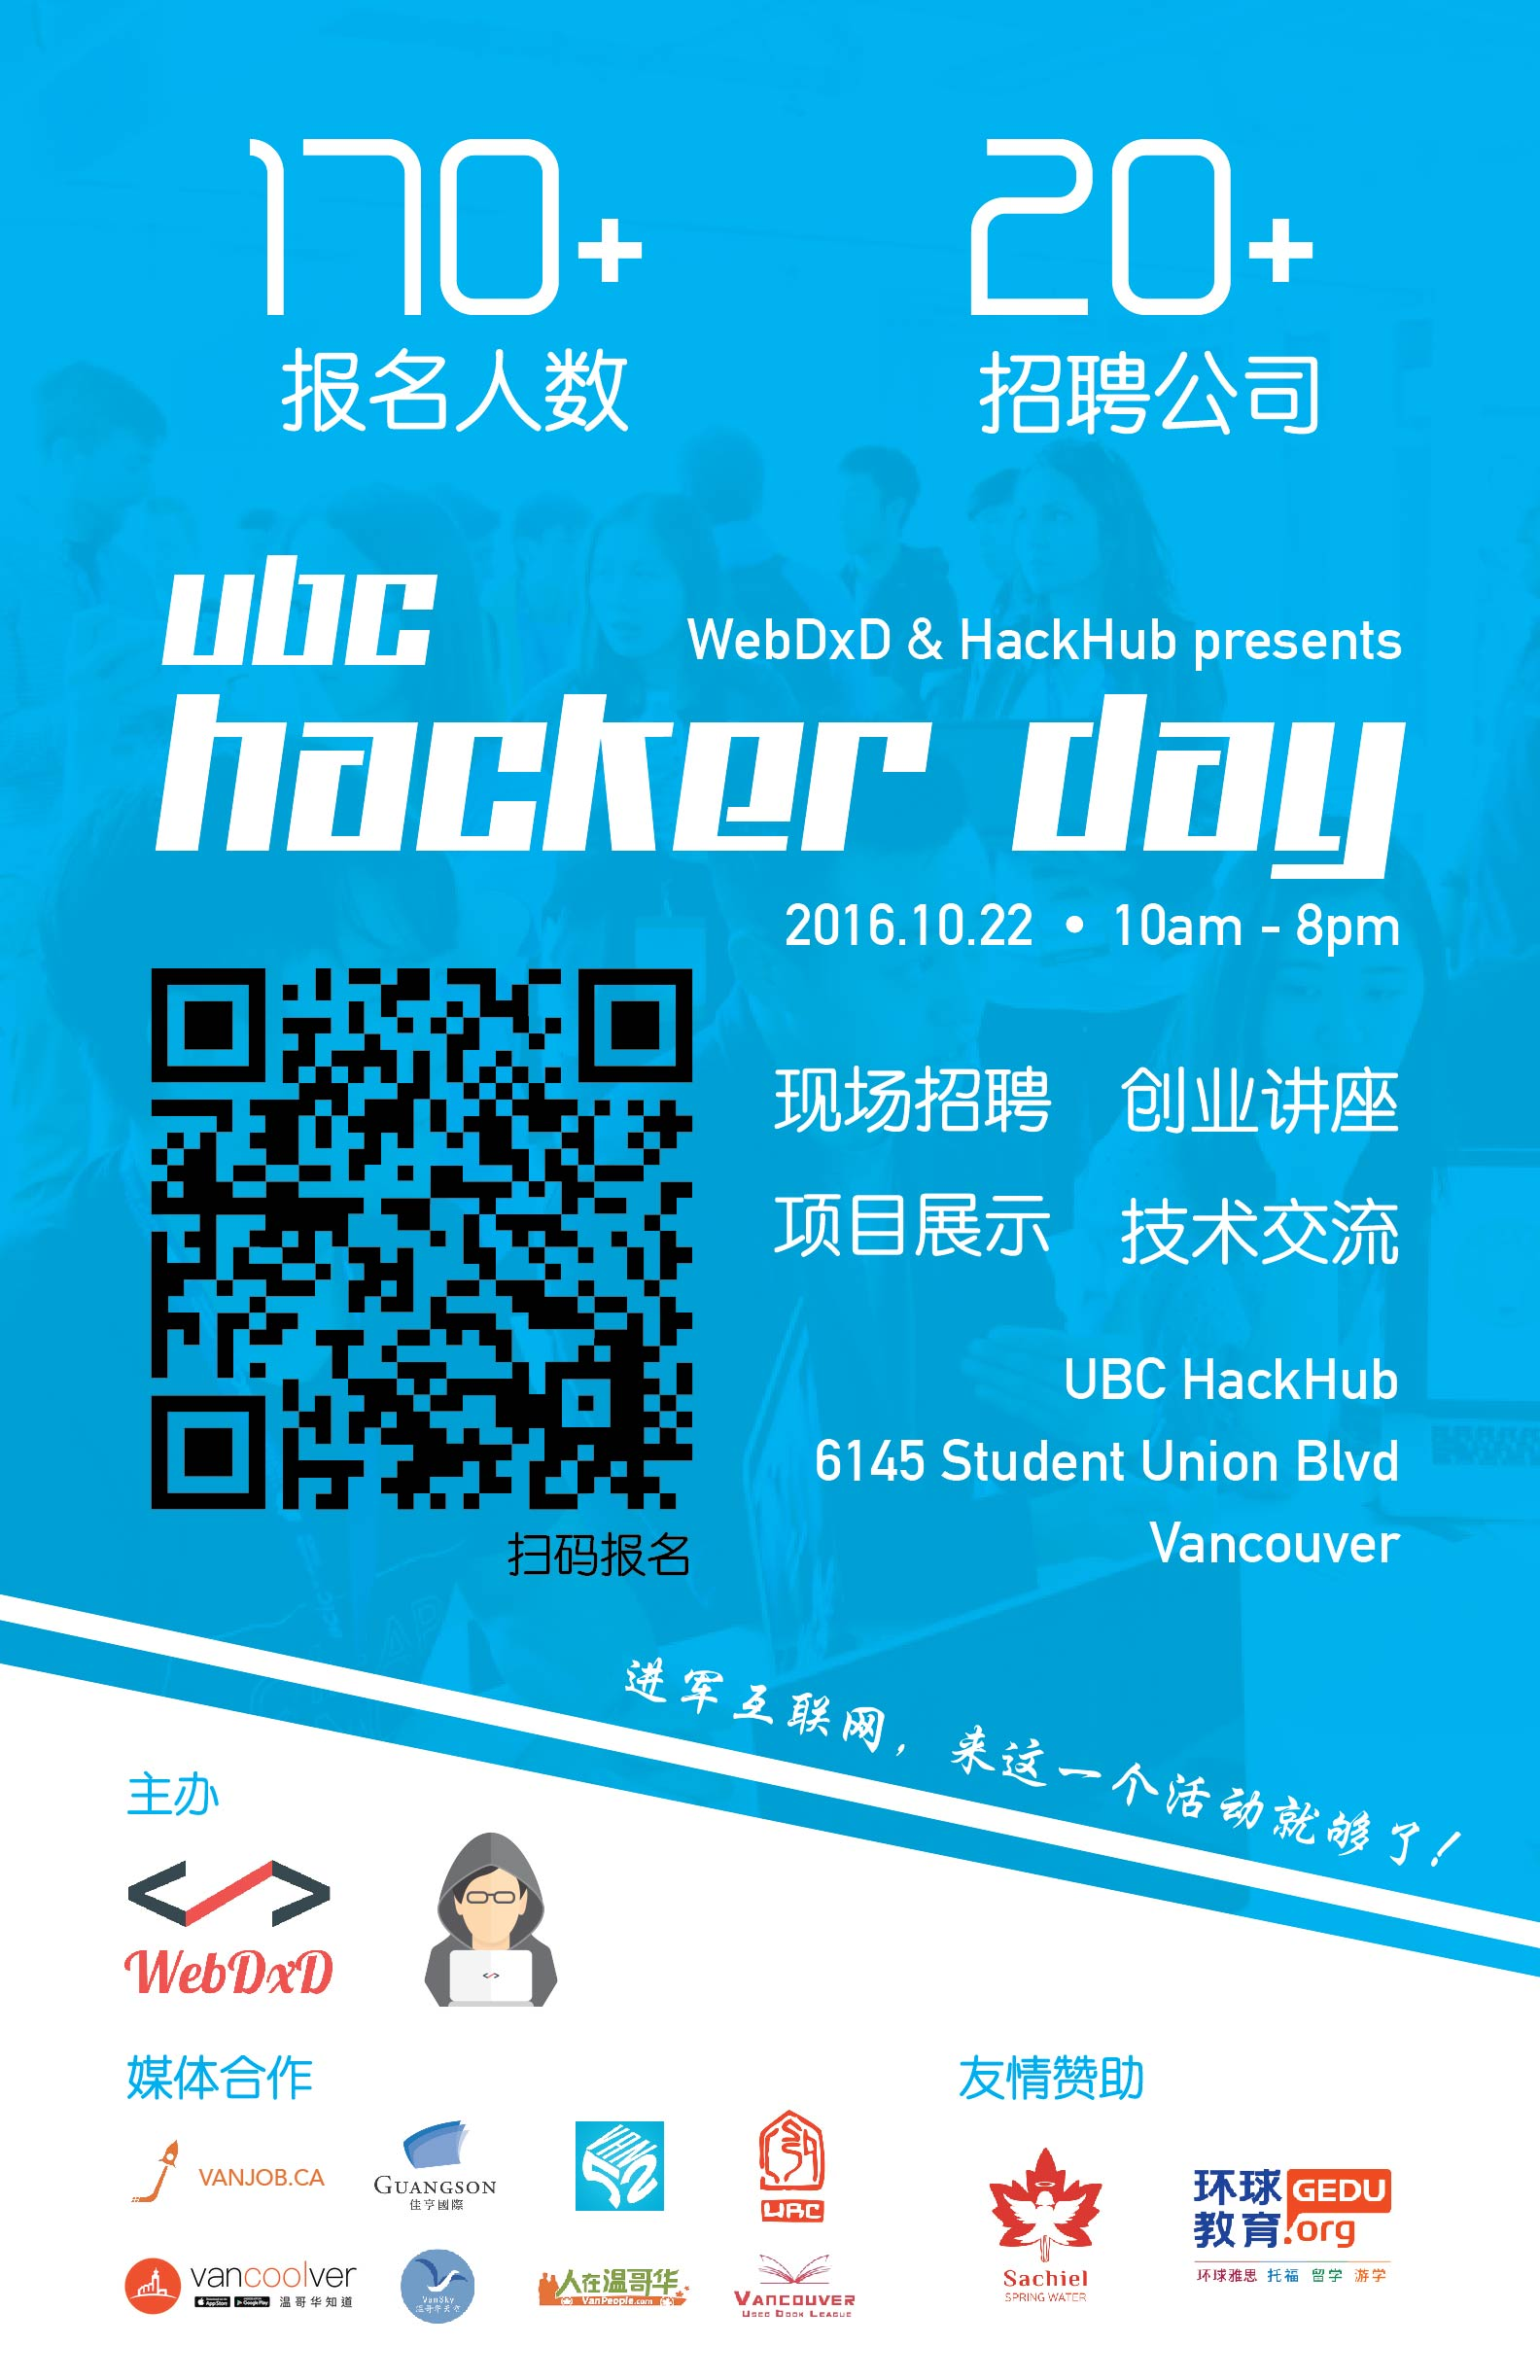 WebDxD UBC Hacker Day 创业及招聘活动